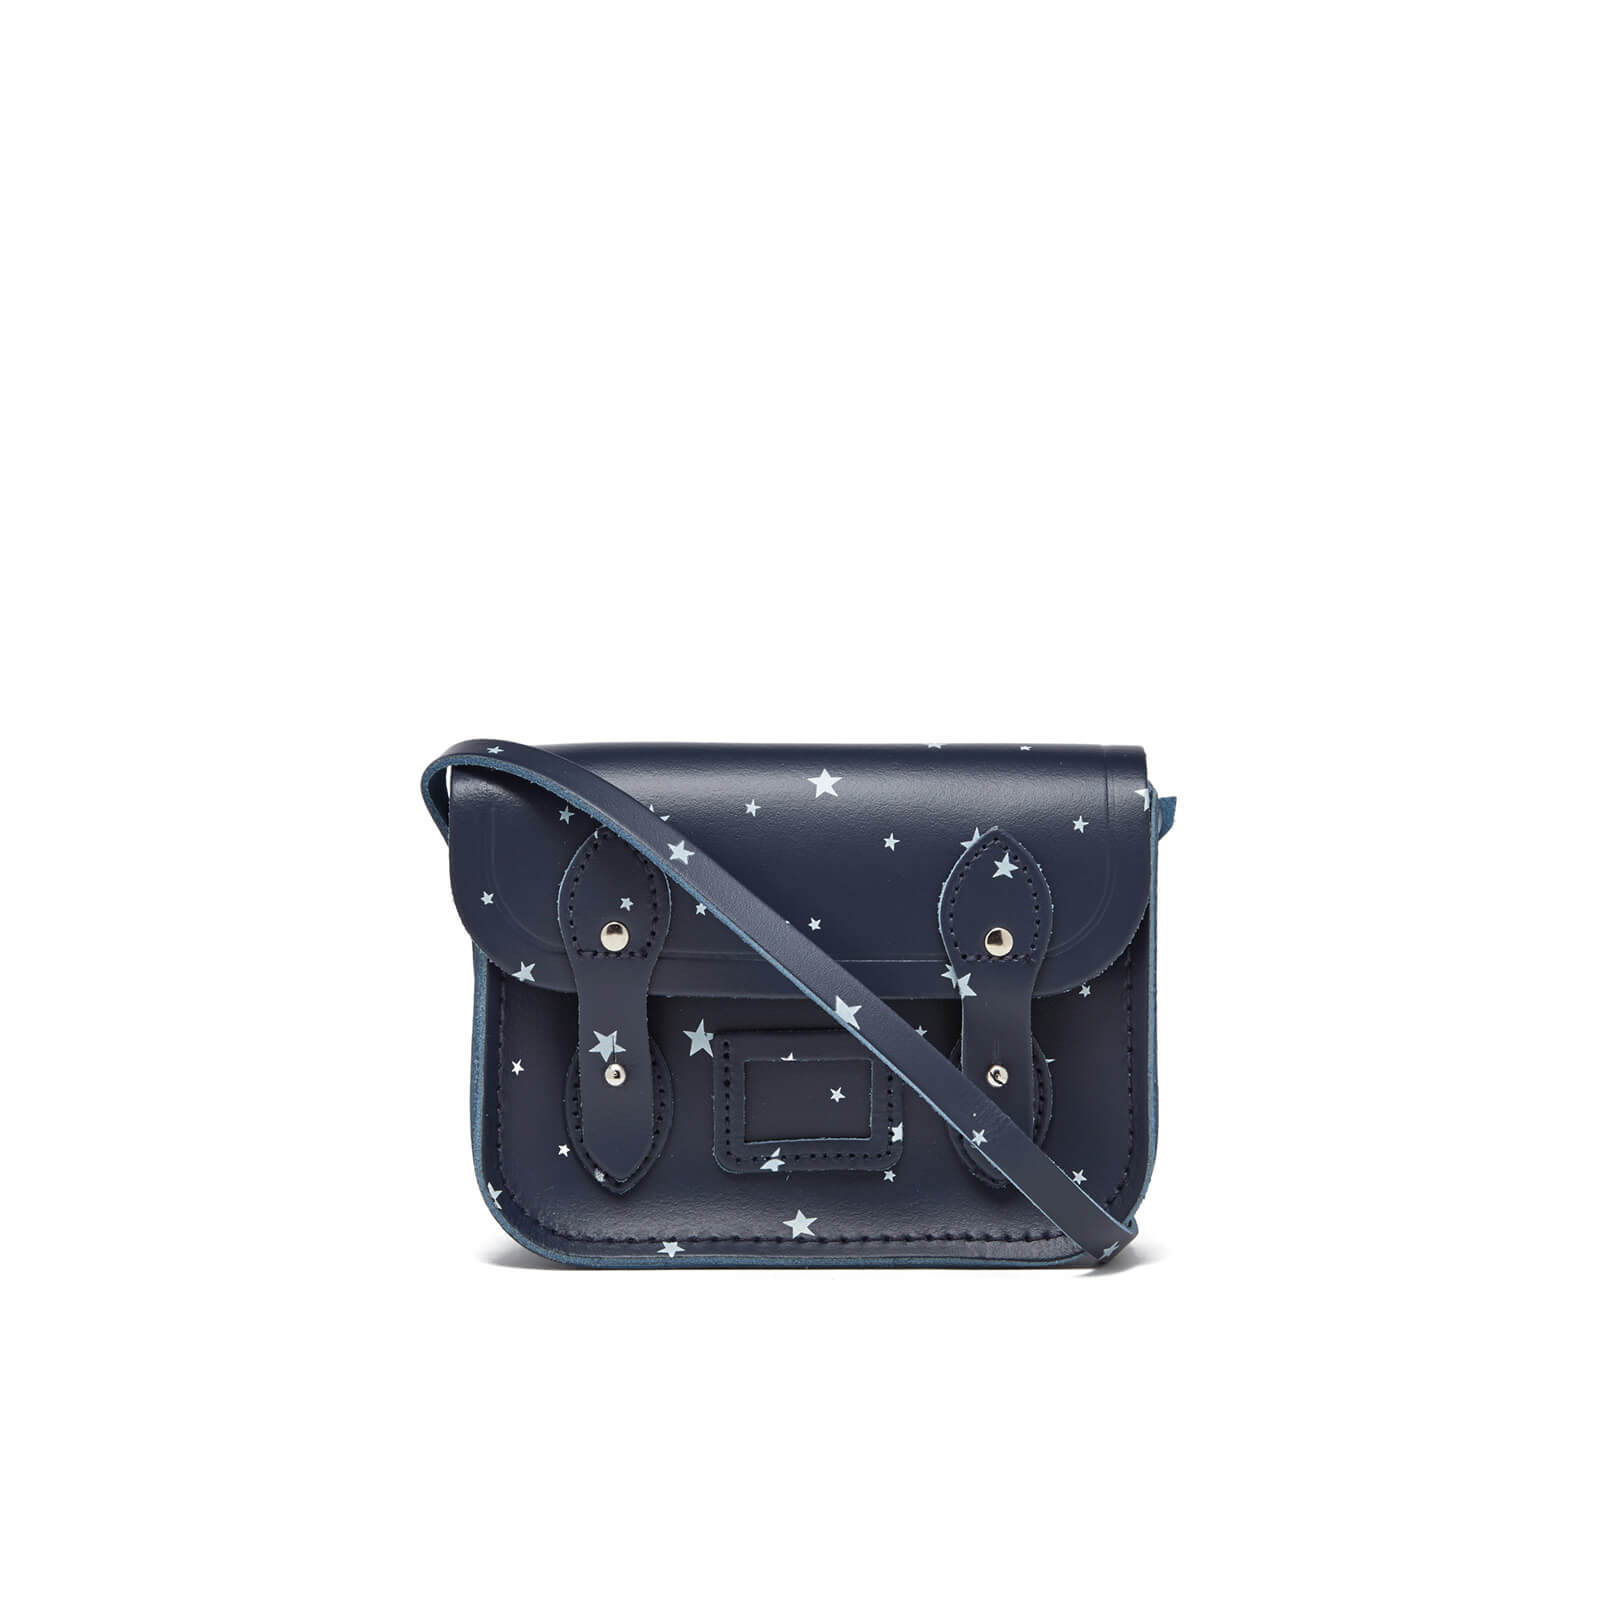 6ff7c00cec The Cambridge Satchel Company Women s Tiny Satchel - Matte Star Print -  Free UK Delivery over £50